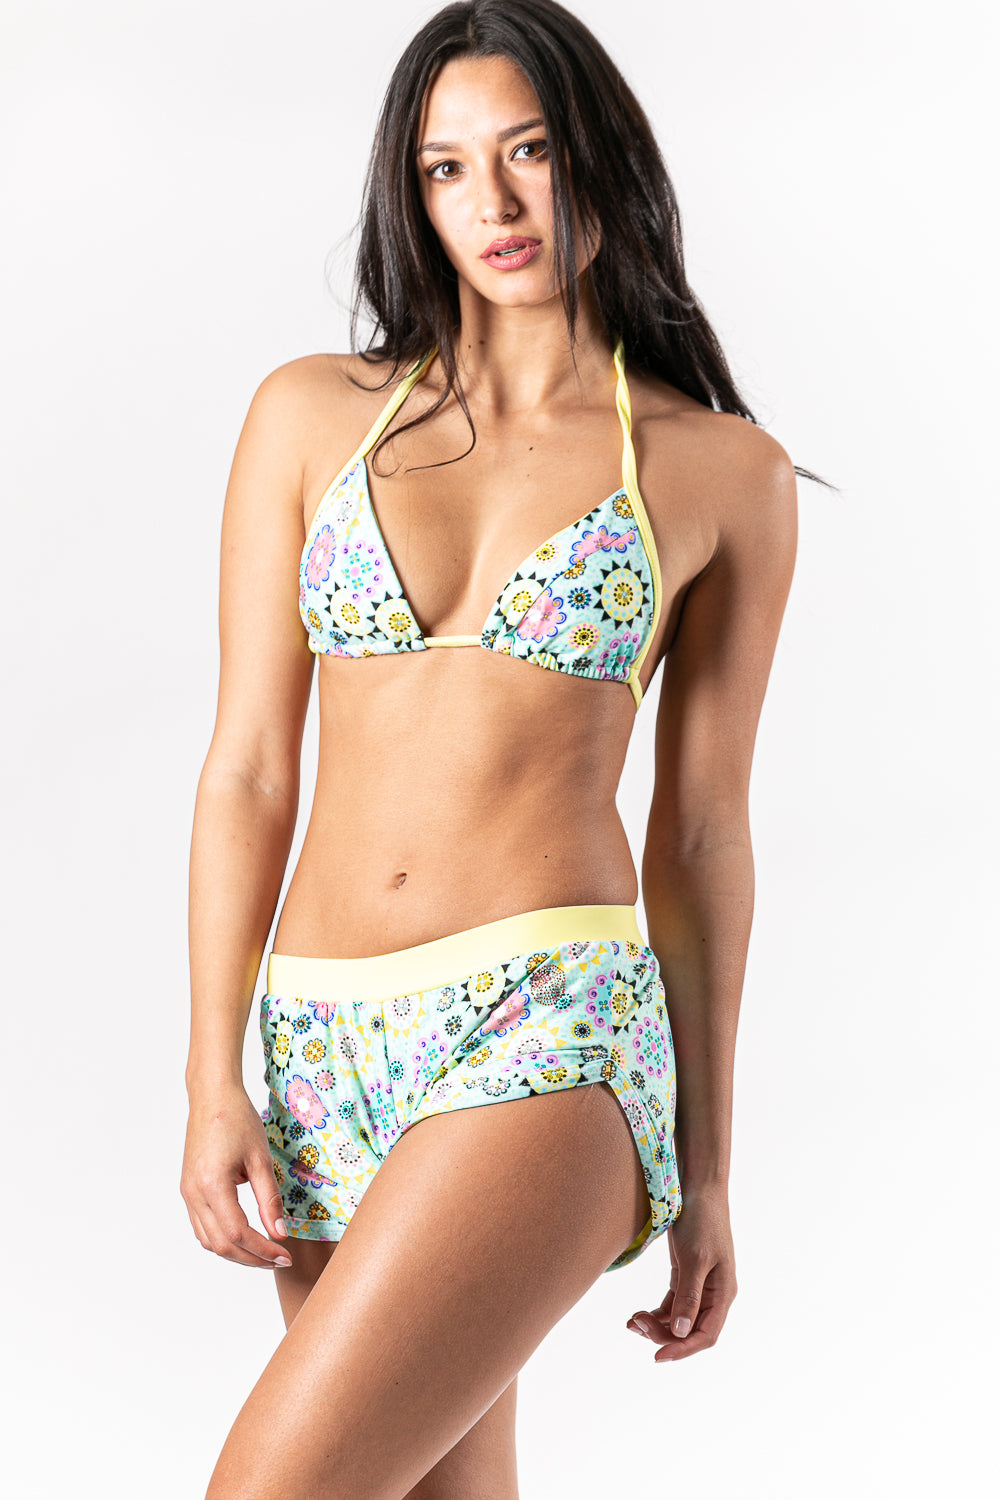 Two pieces sporty bikini with shorts pants in floral print and yellow tones. Sustainable Swimwear made from recycled plastics and bottles by BRISSUS